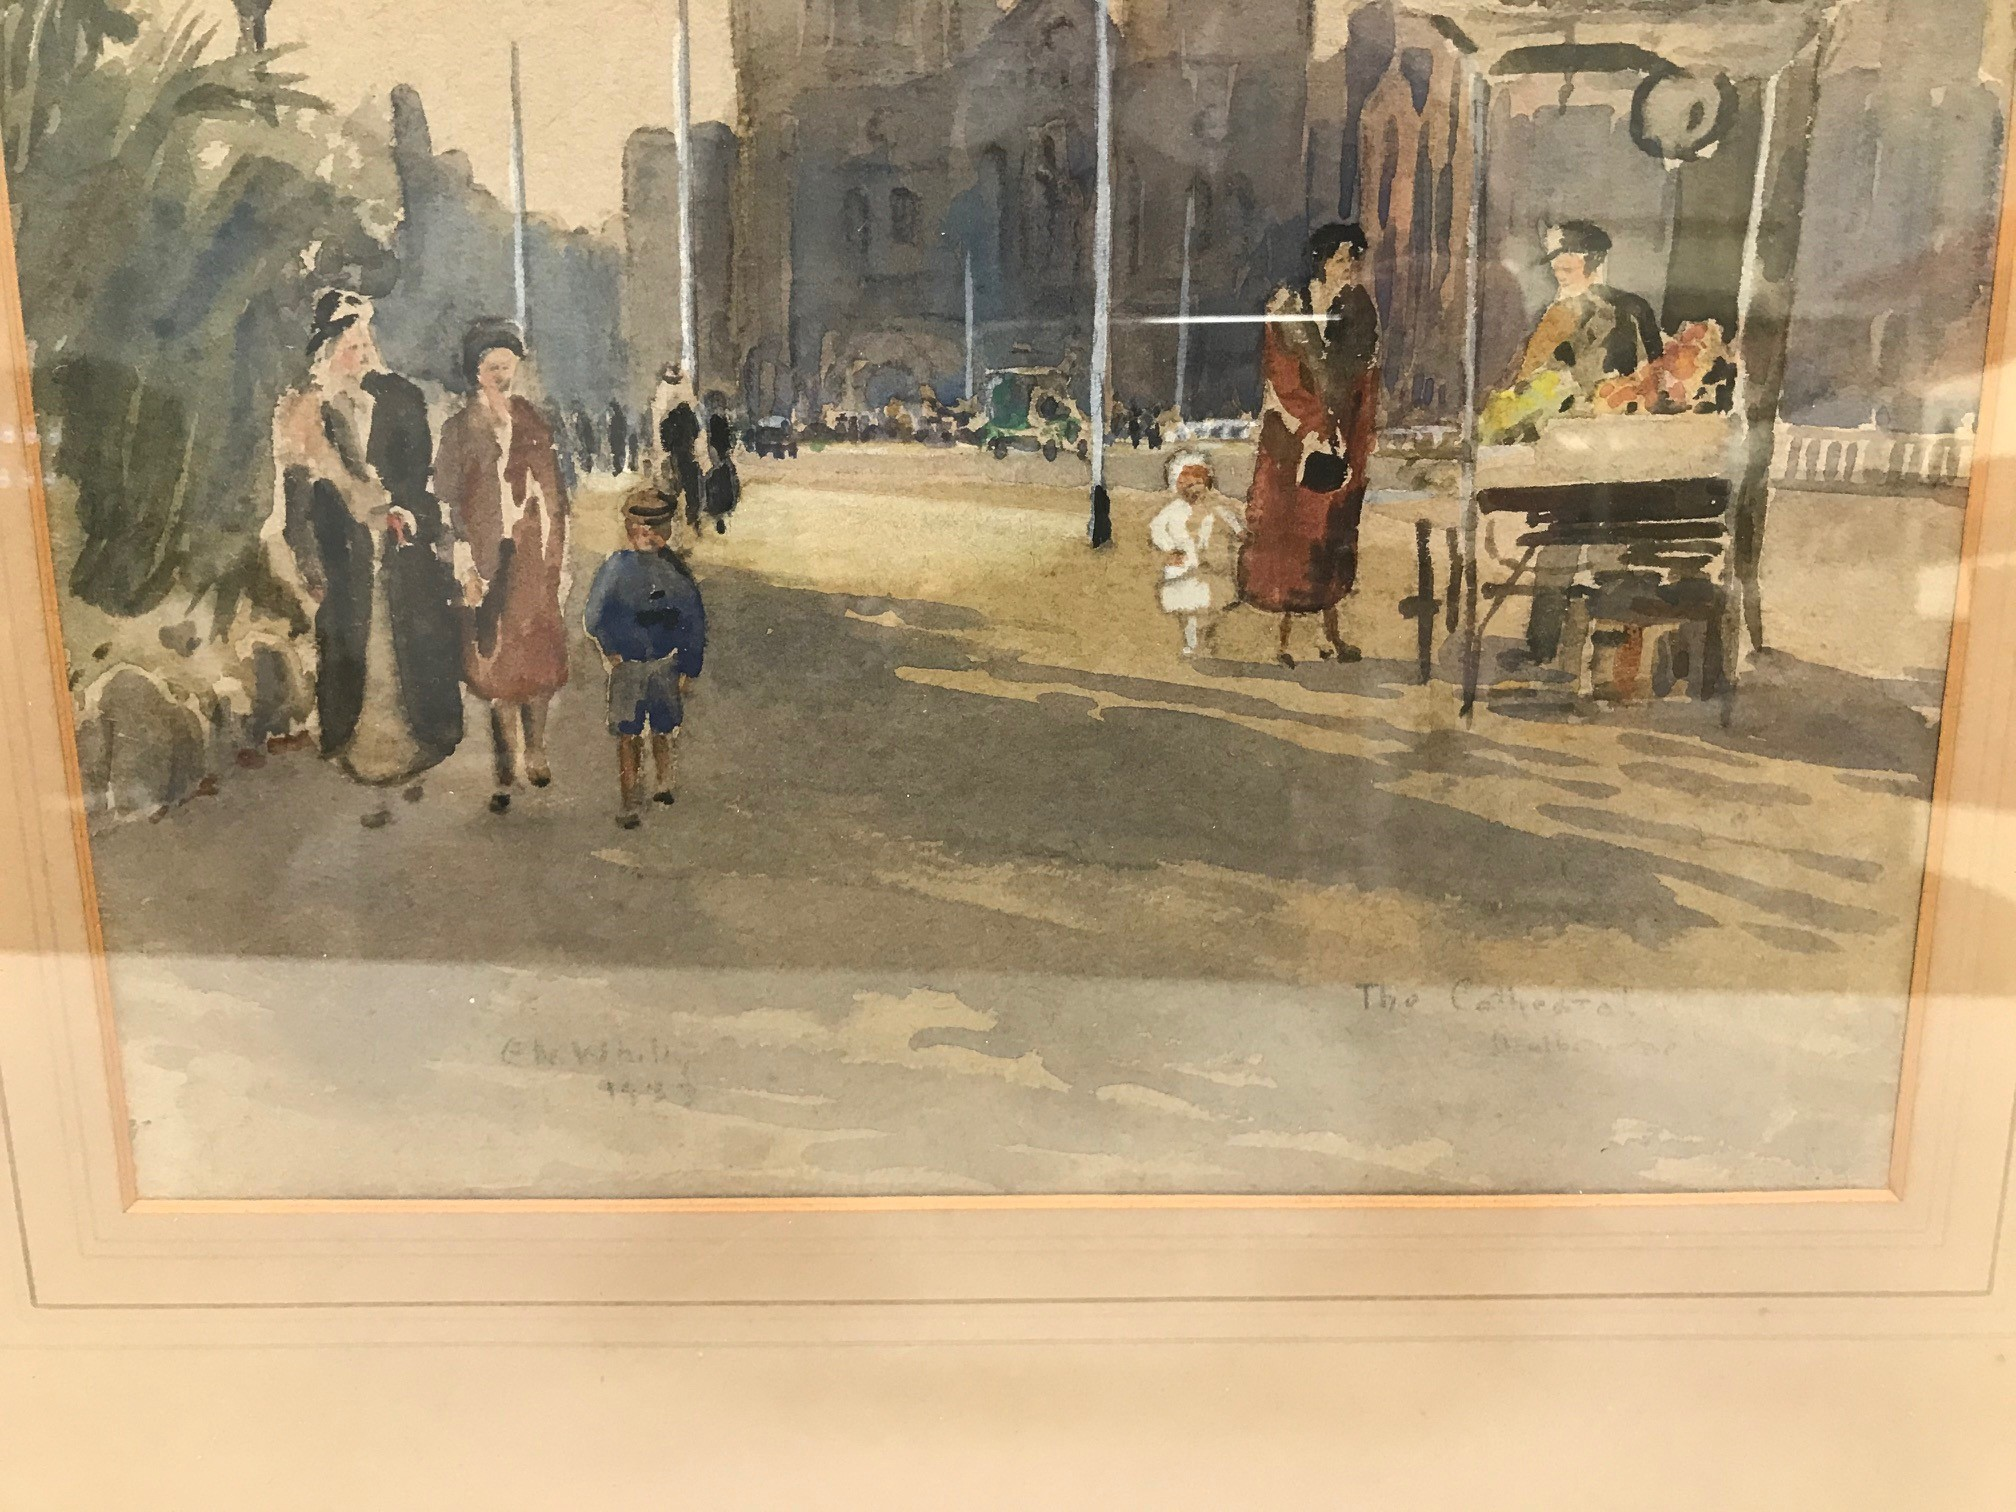 """E.W. Witty 1930s watercolour, """"Cathedral Melbourne"""", signed and dated 1933, 37cm x 27cm, framed - Image 3 of 3"""